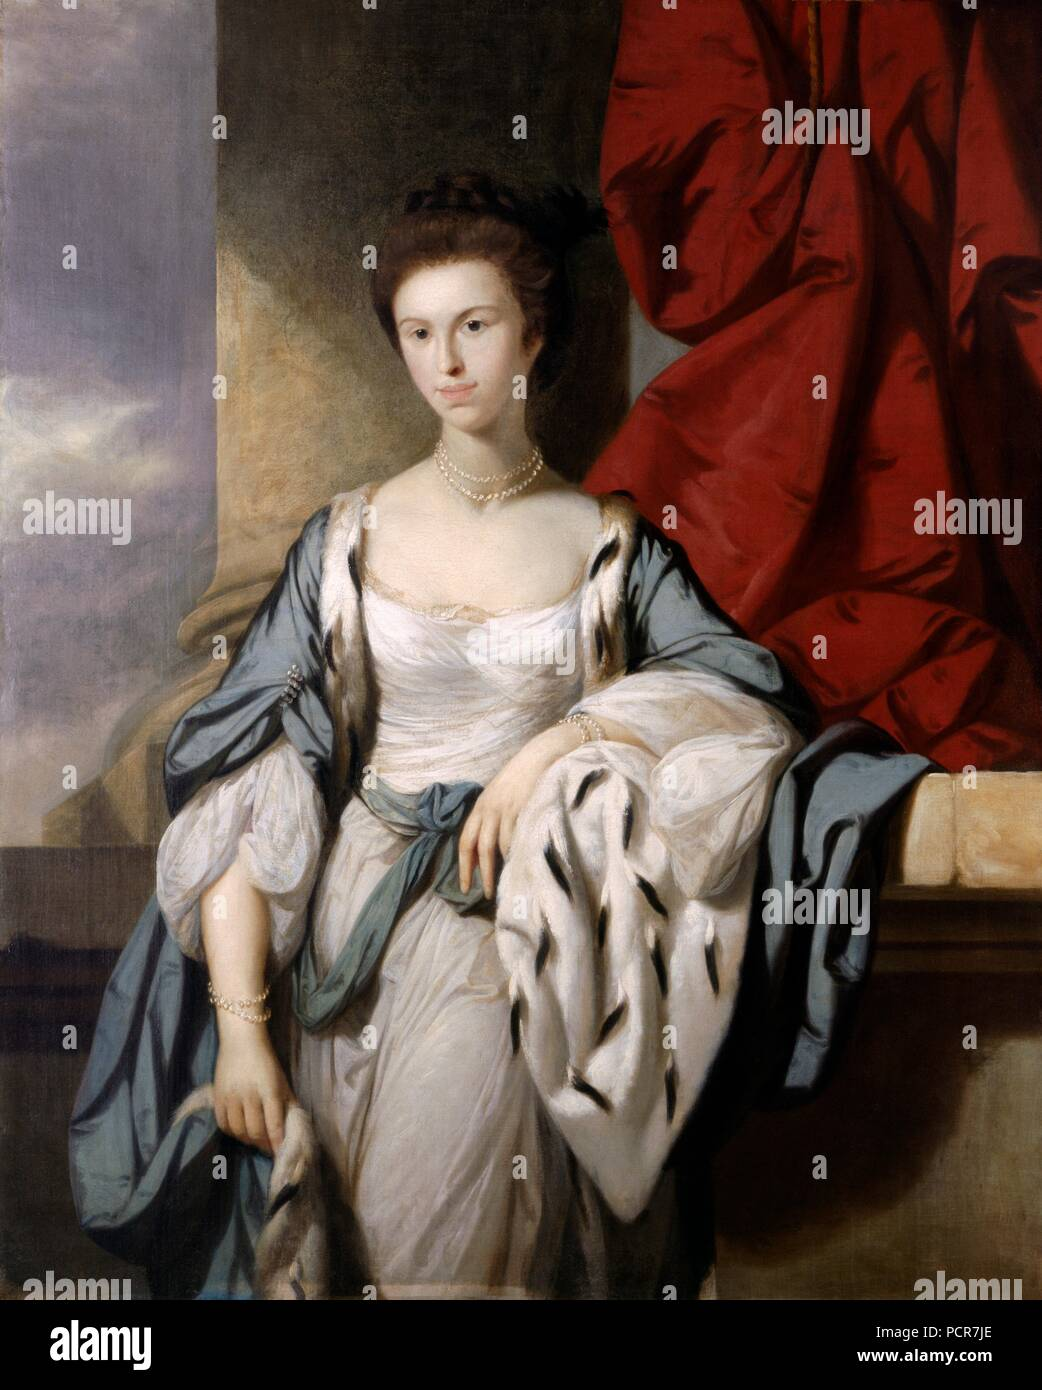 'Maria Constantina Trevor, Countess of Suffolk', 18th century. Painting in Kenwood House, London, from the Suffolk Collection. - Stock Image